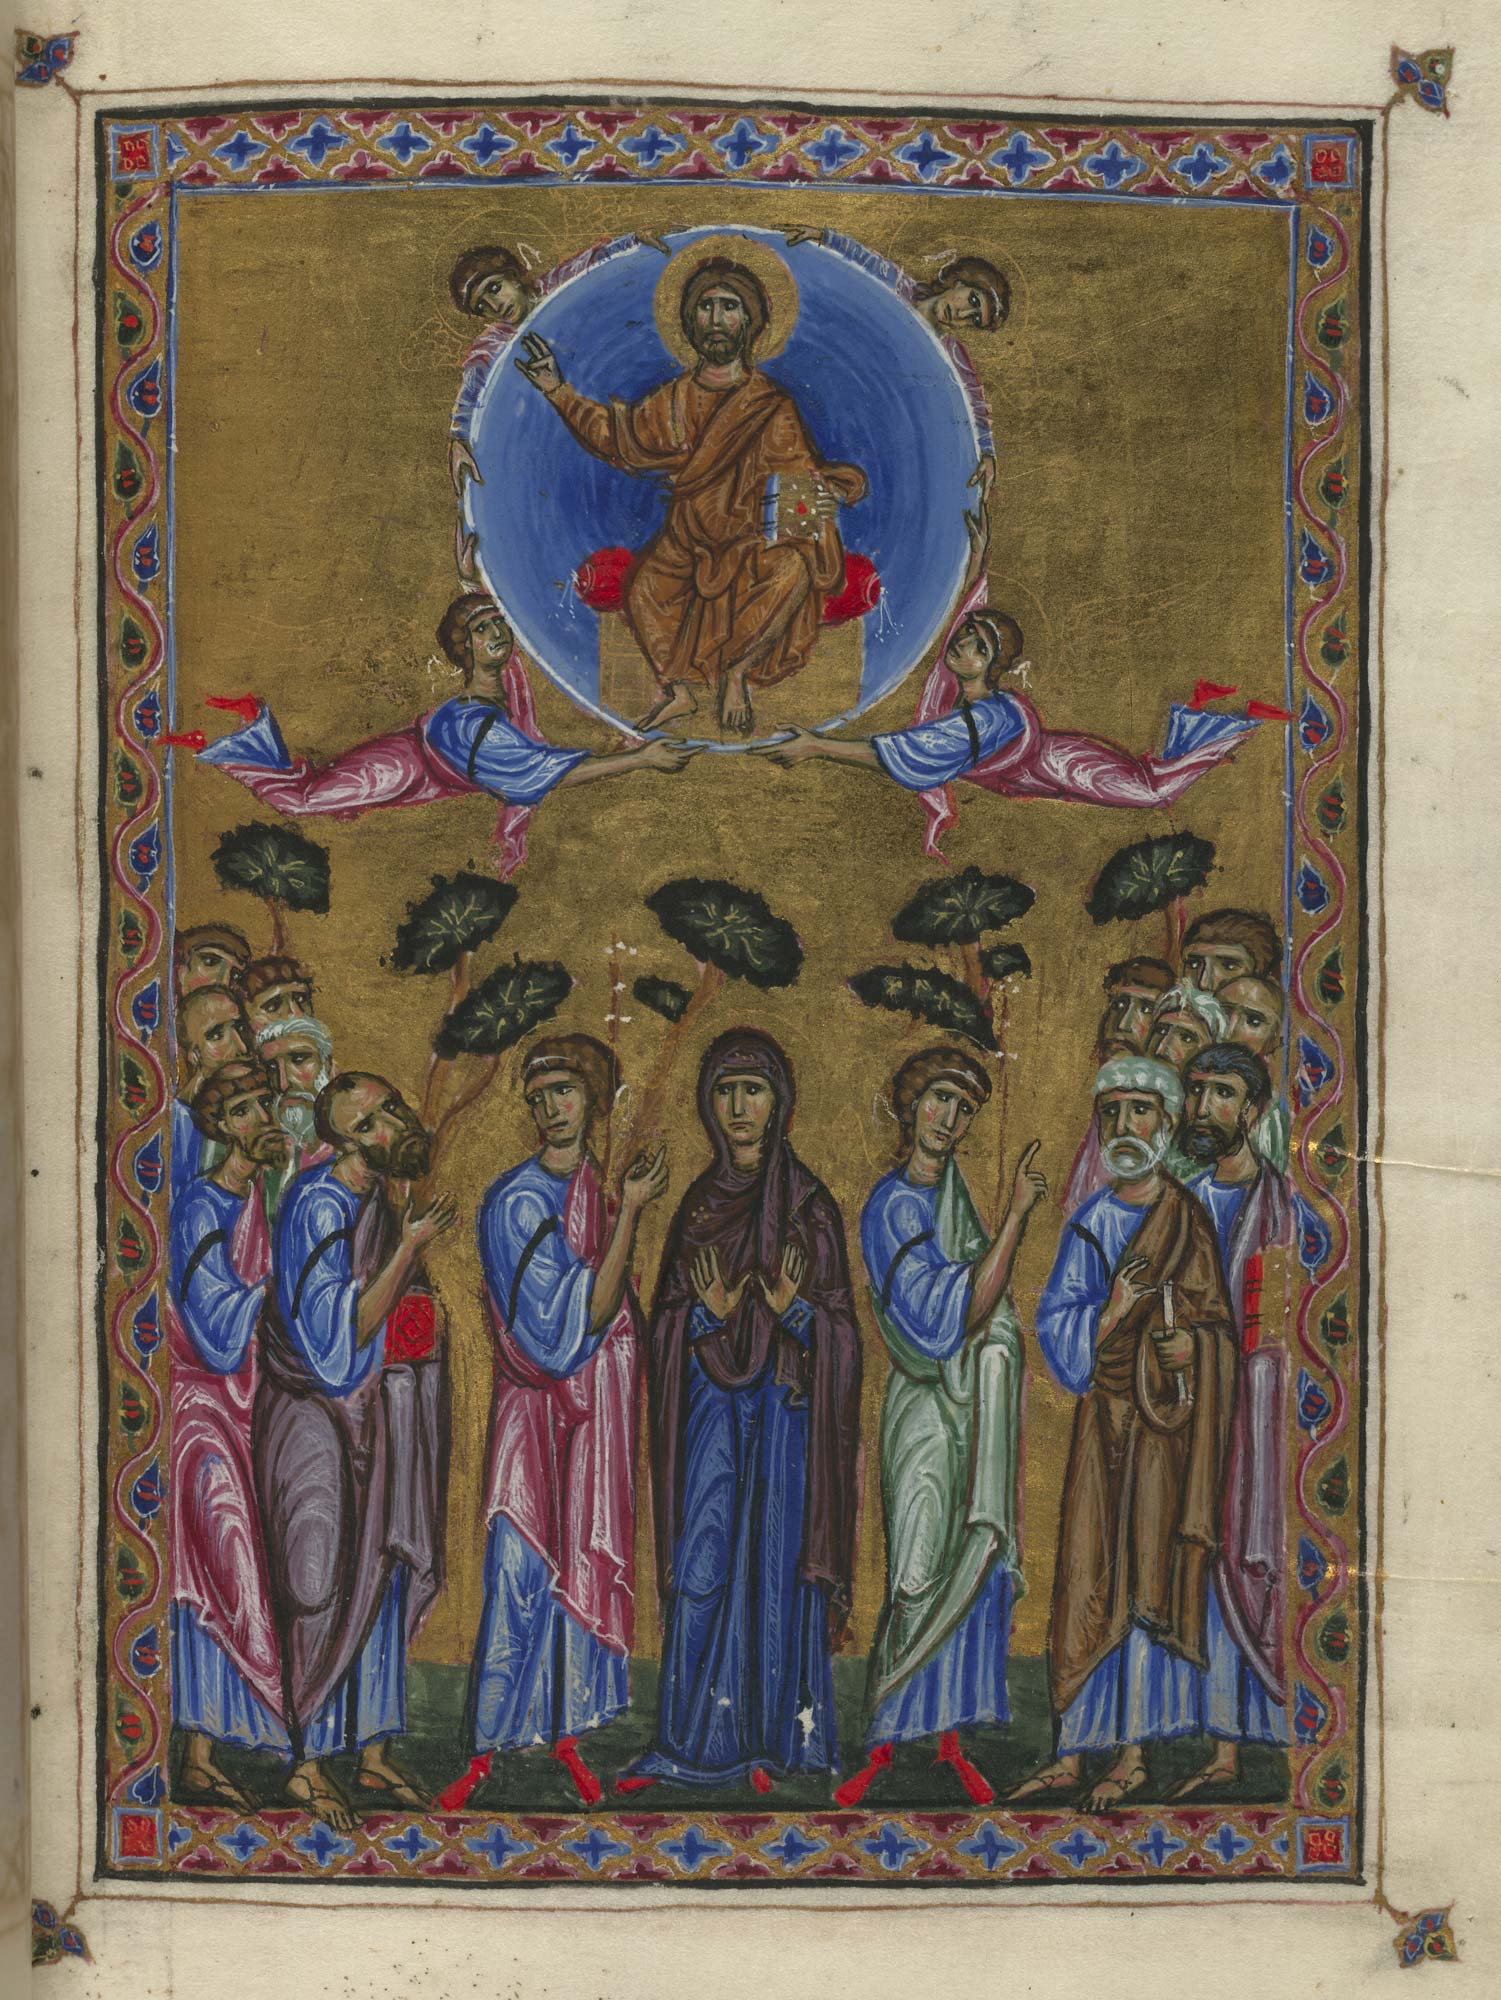 Melisende Psalter f.11 showing the ascention of Christ to heaven after his resurrection